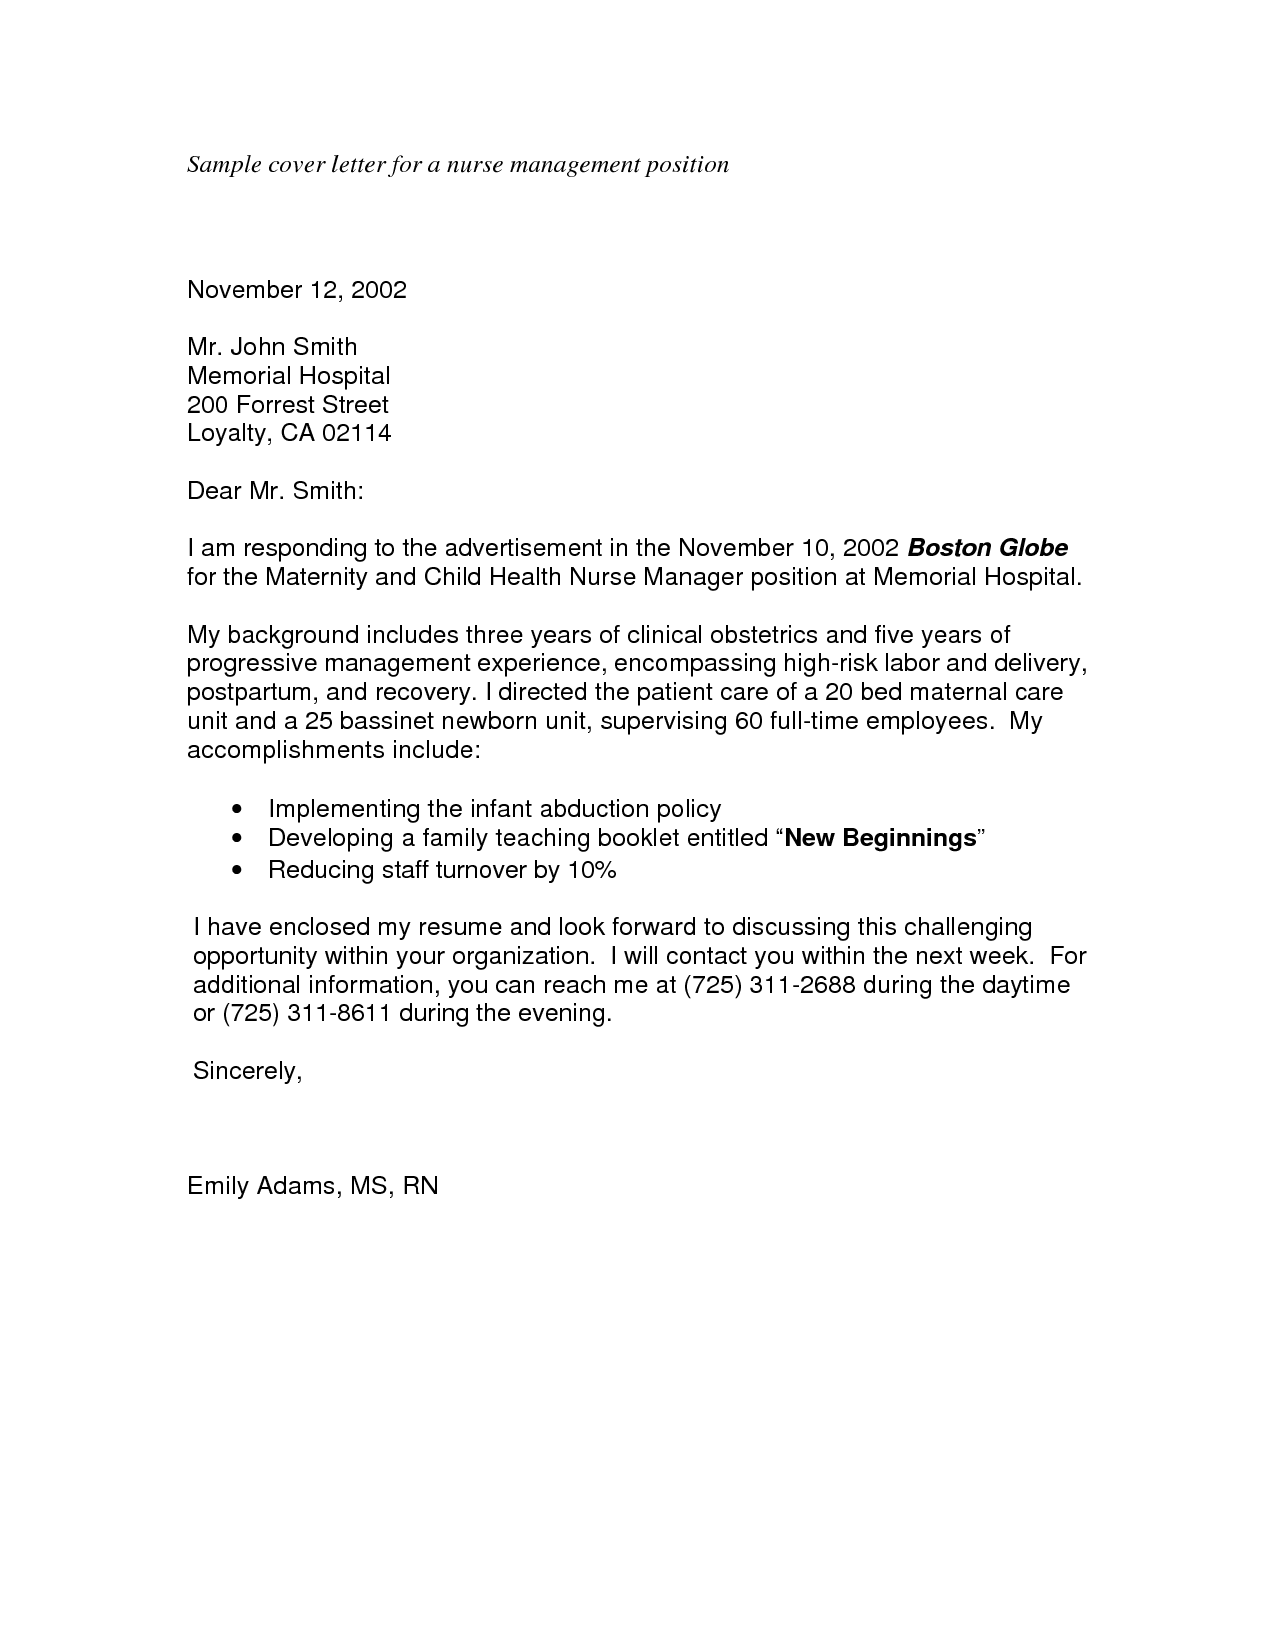 Sample cover letter for applying a job for Sample cover letter of interest for employment